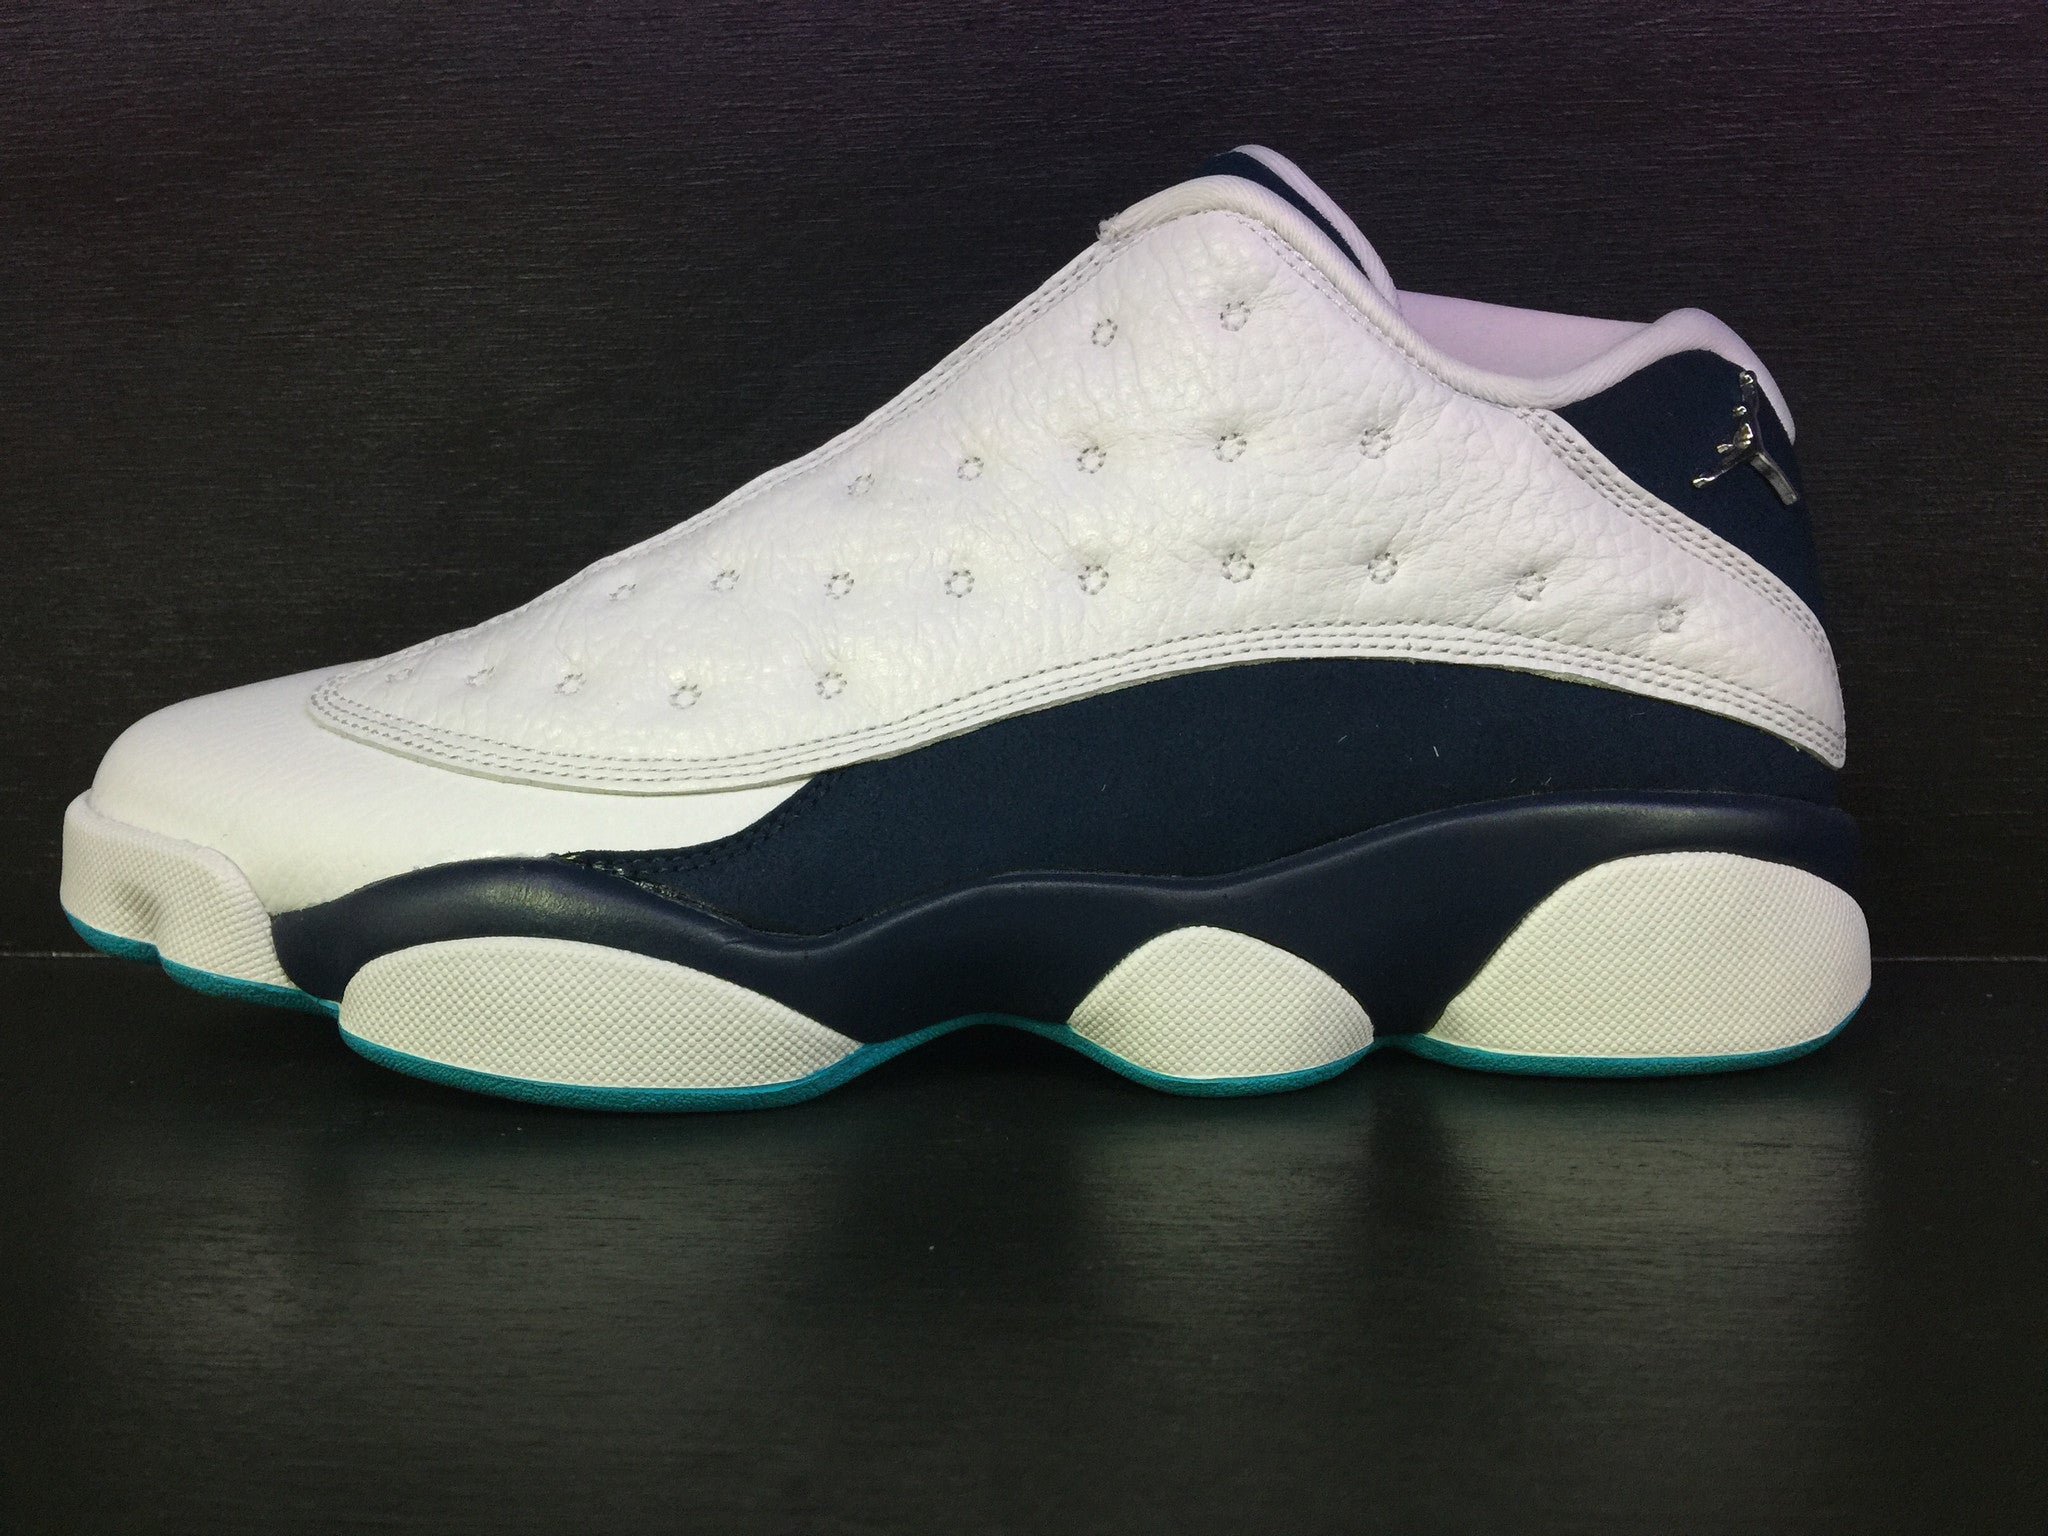 Air Jordan 13 Retro Low 'Hornets'